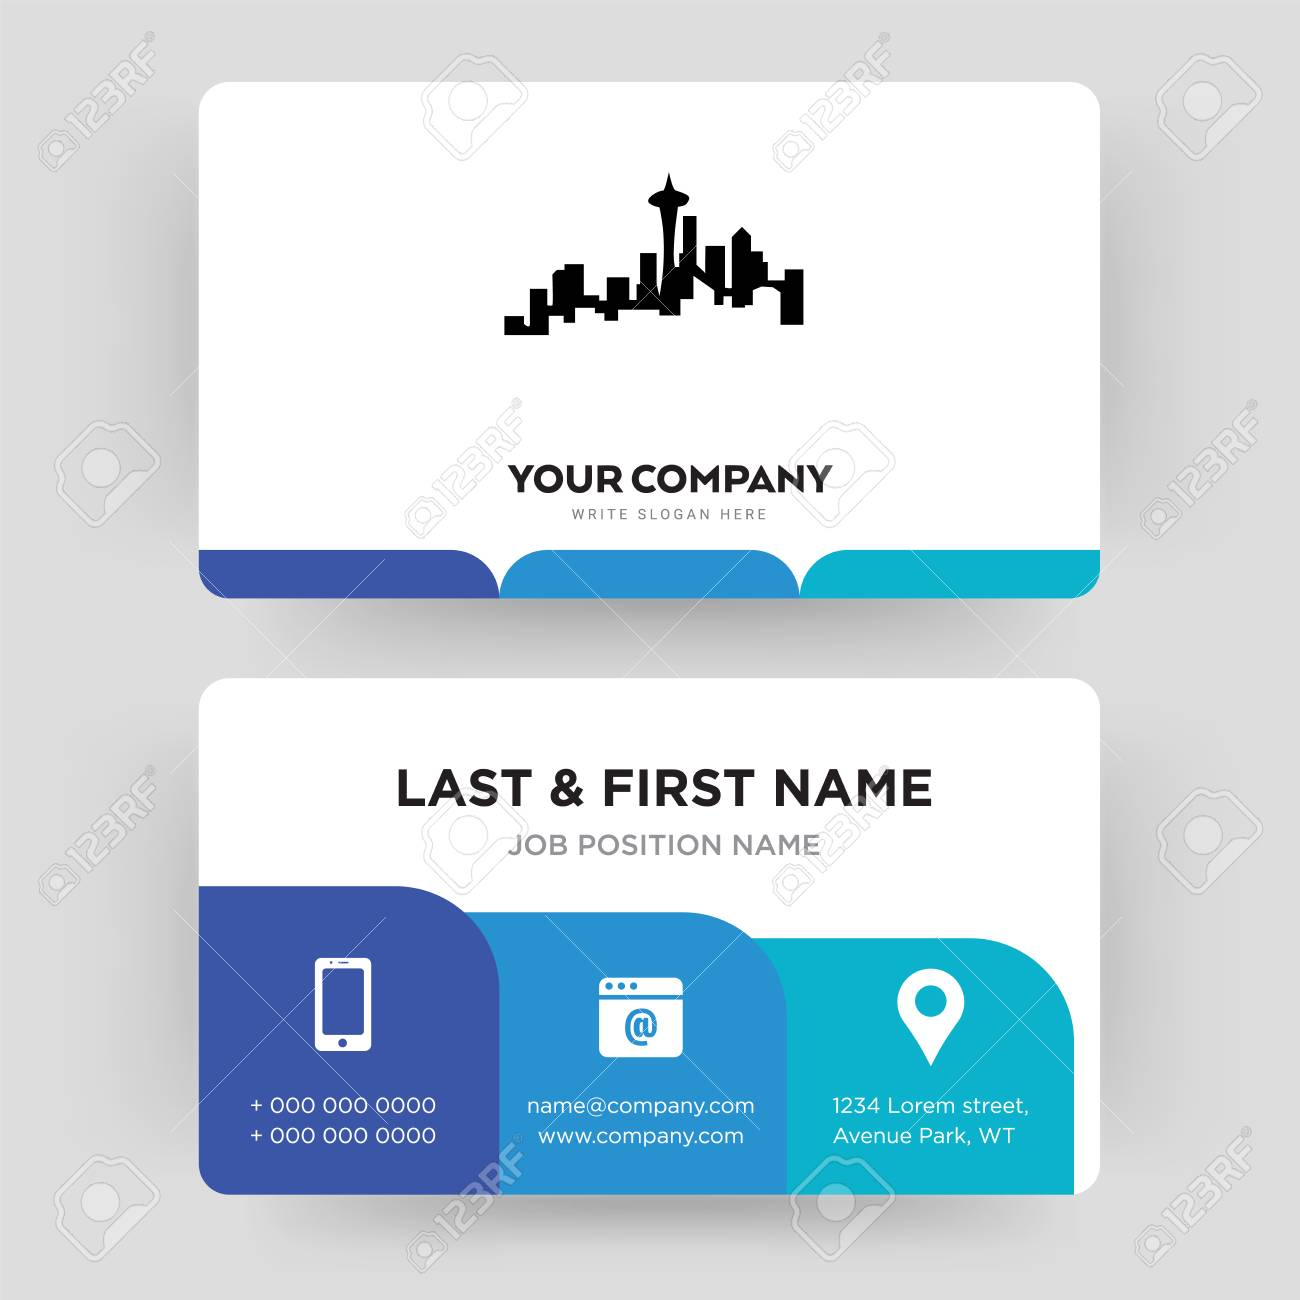 Seattle business card design template visiting for your company seattle business card design template visiting for your company modern creative and clean colourmoves